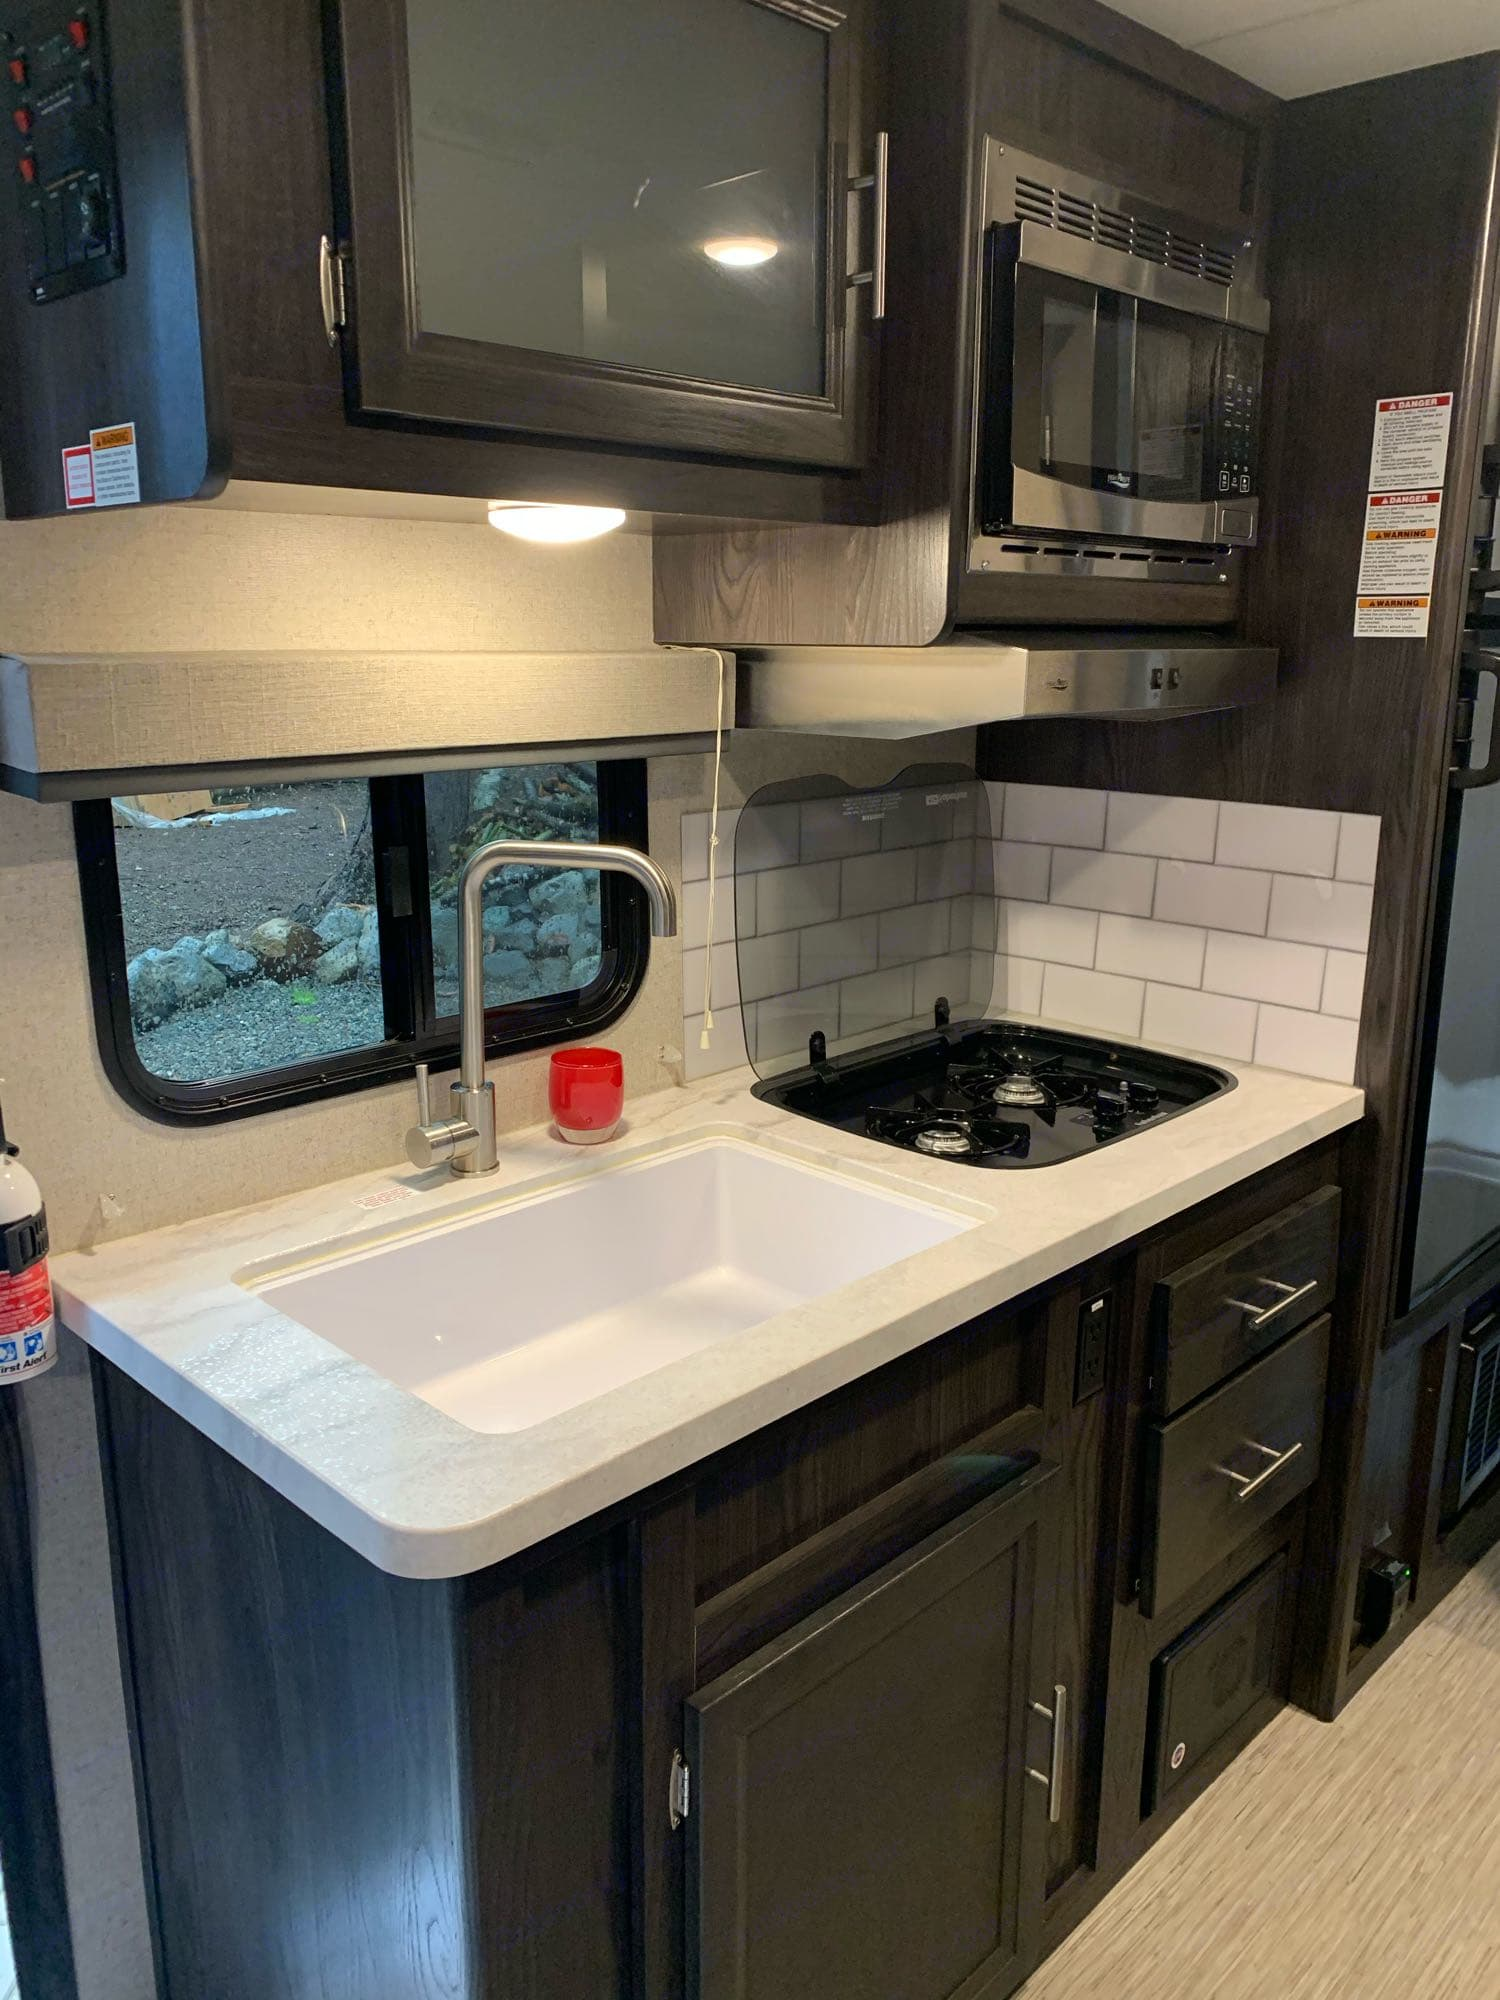 Extra large sink makes clean up easy!. Kodiak Cub 2018